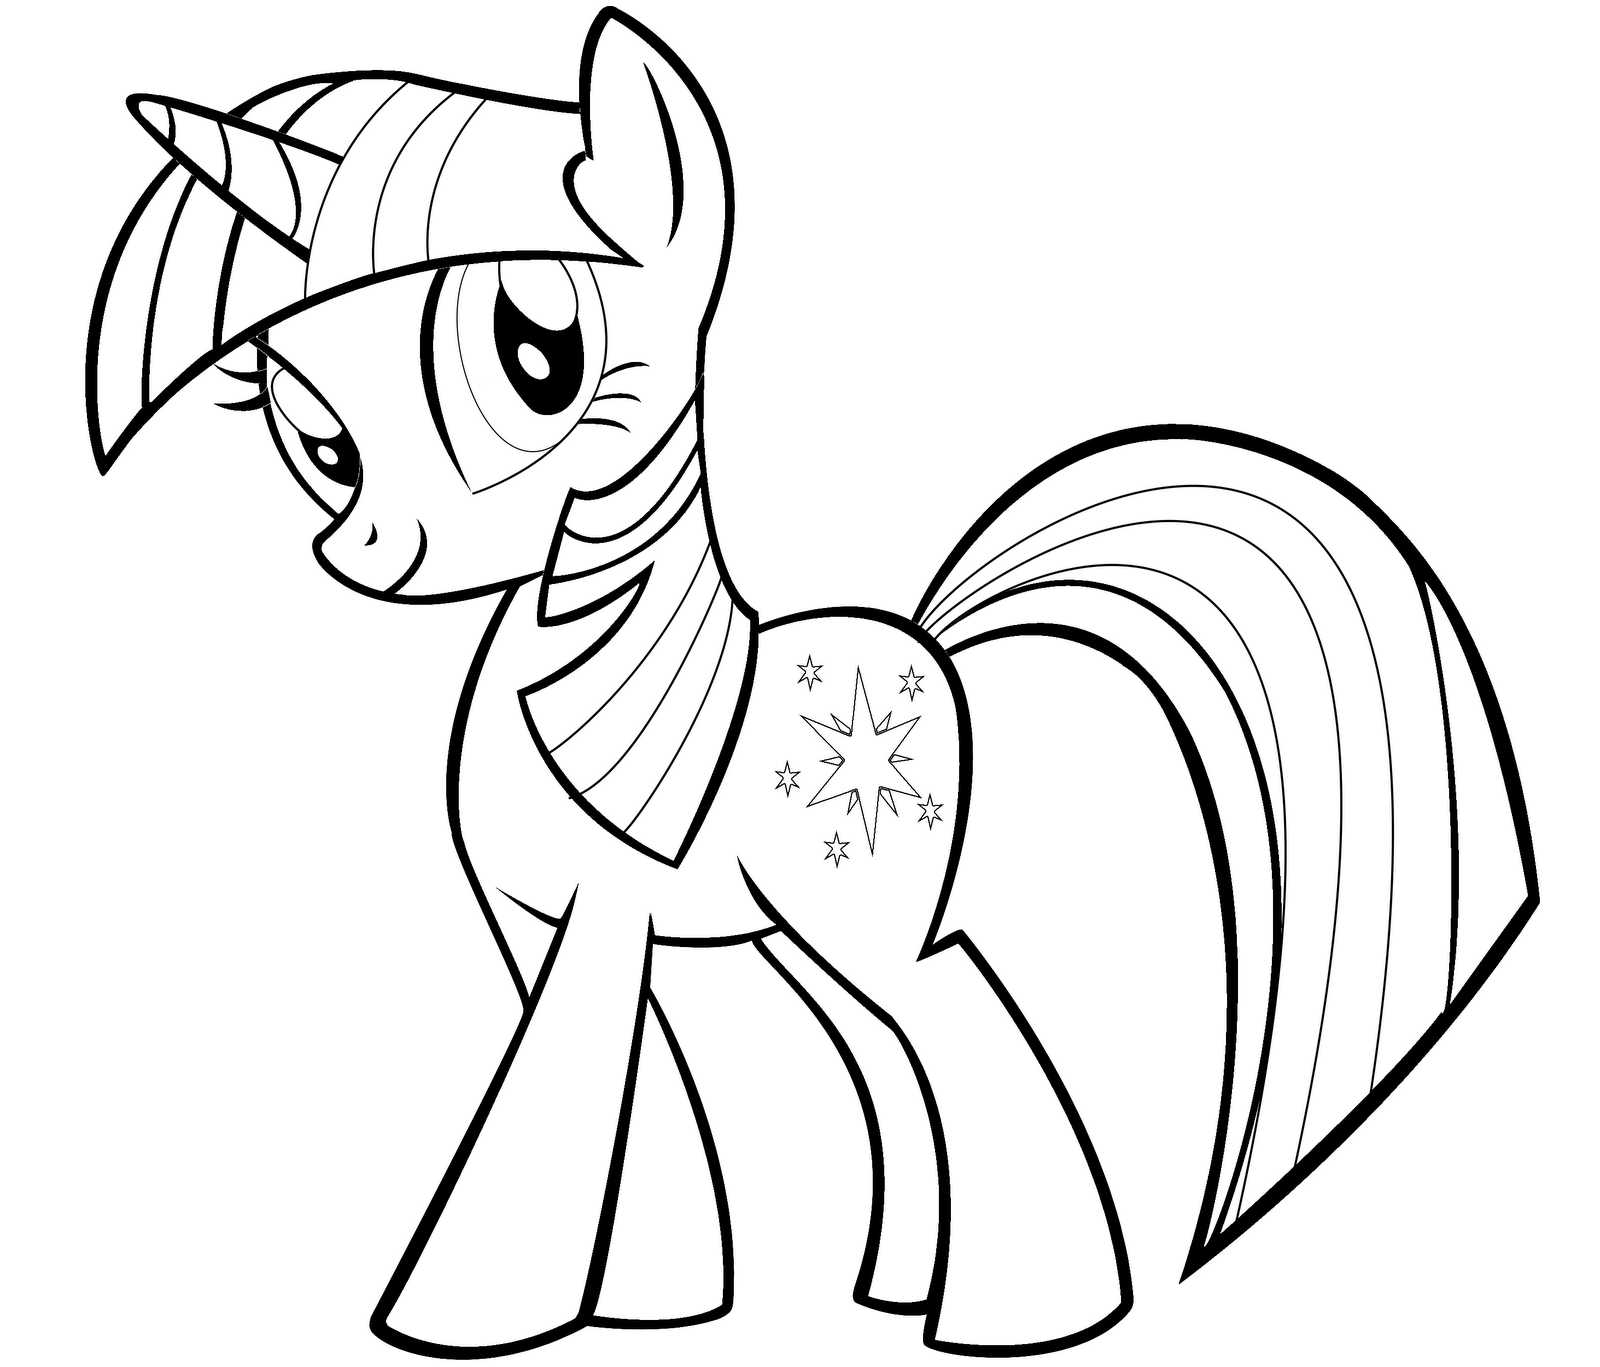 Free Printable My Little Pony Coloring Pages For Kids My Little Pony Coloring My Little Pony Twilight Cartoon Coloring Pages